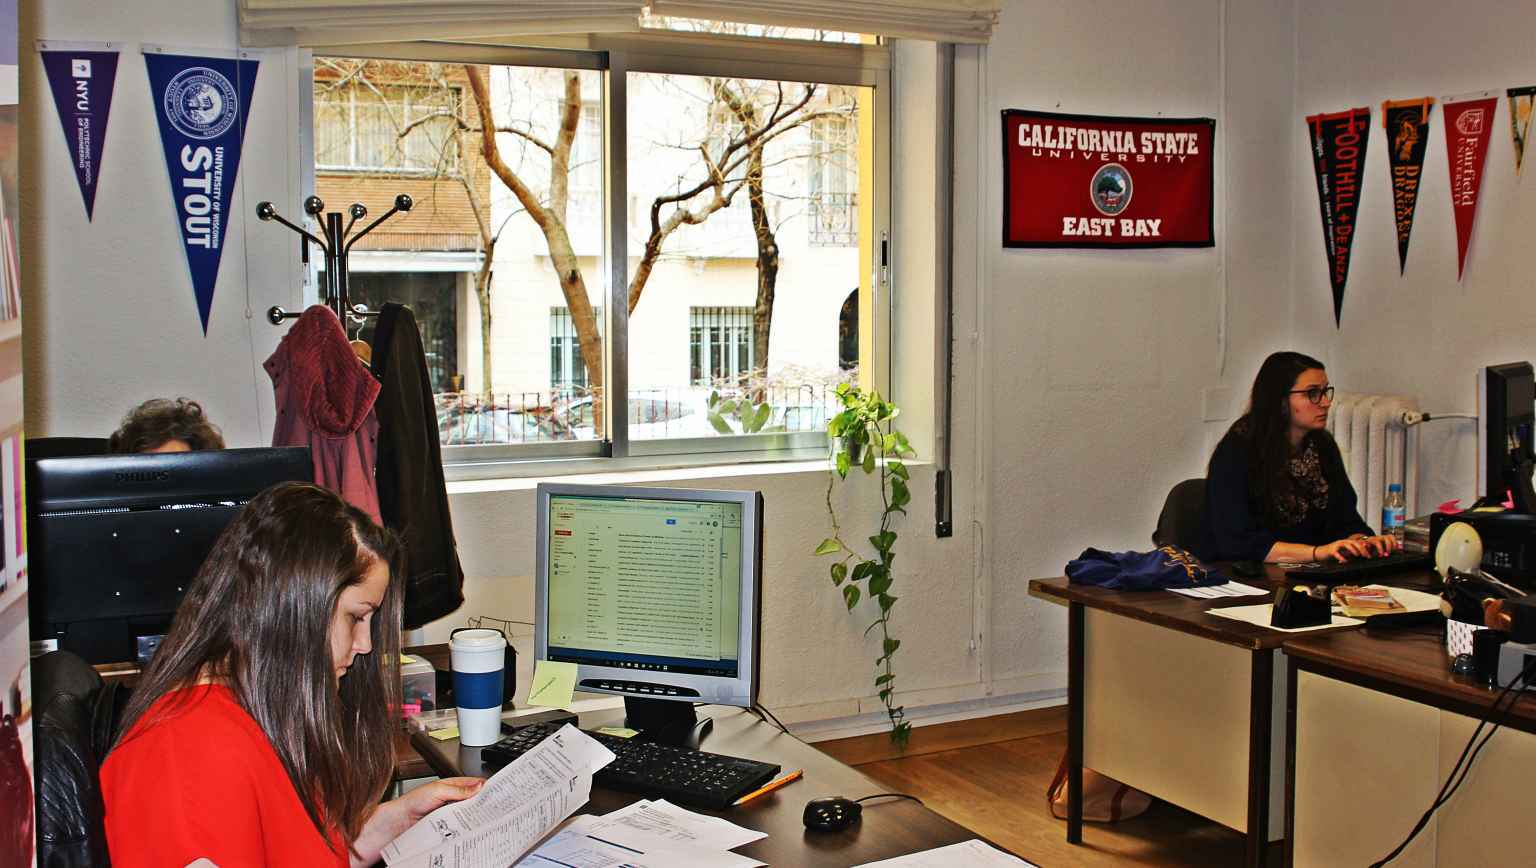 EducationUSA - Fulbright Madrid office